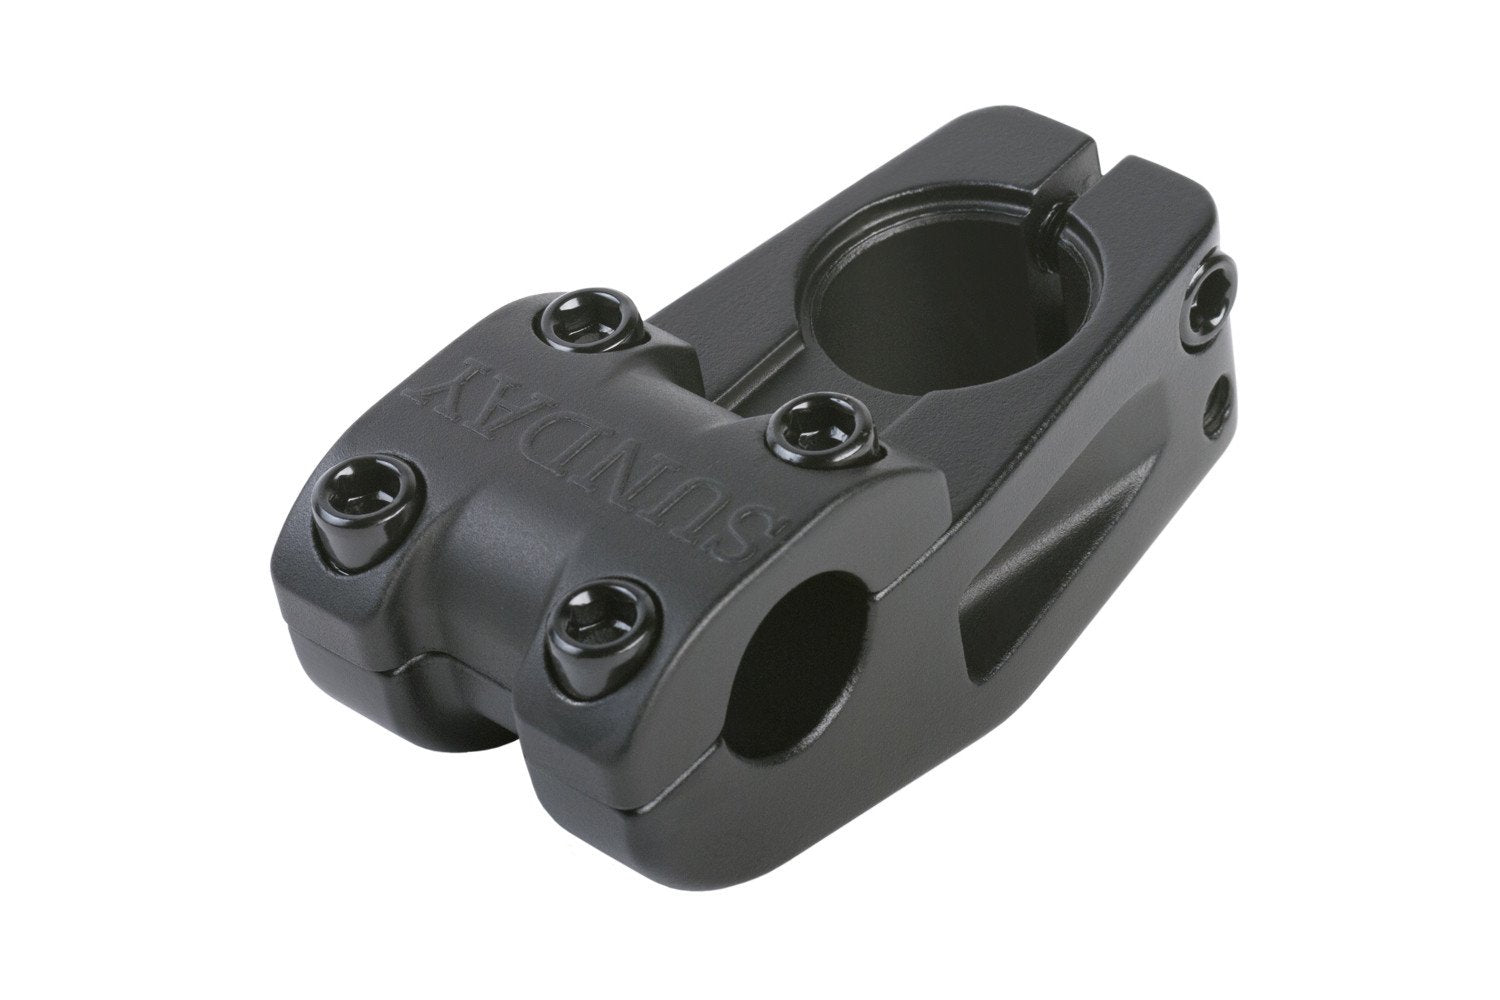 Sunday BMX Freeze Top Load Threadless Stem - 48mm - Black